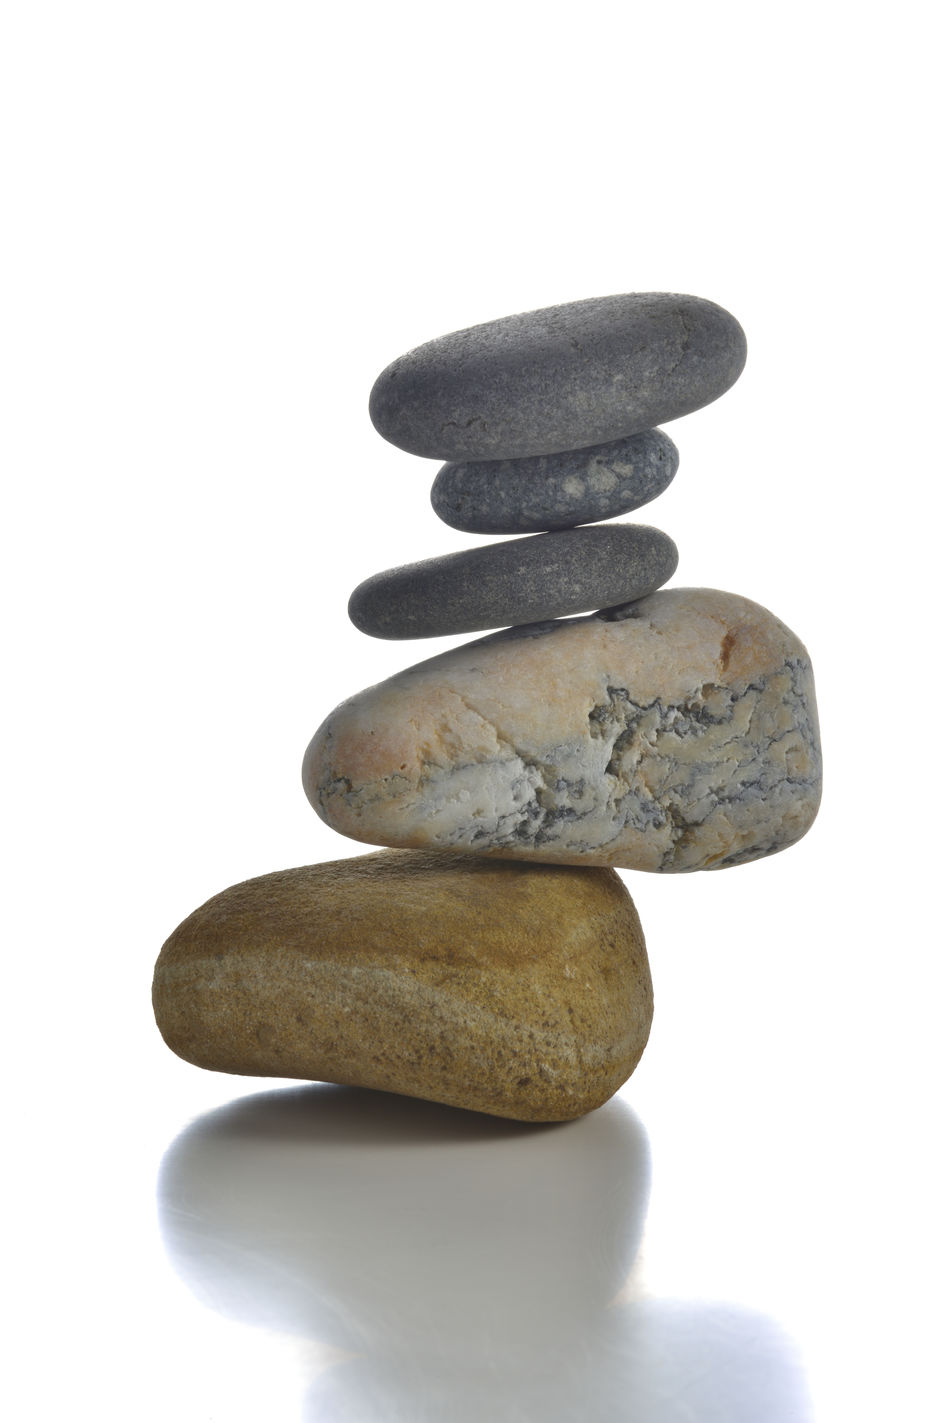 AIMS Close-up Effort Explore Force Help Nature No People Other Partner Pebble Reached Relationship Stand Up Standard Pole Stone - Object Studio Shot Taiwan Team Up White Background Zen-like